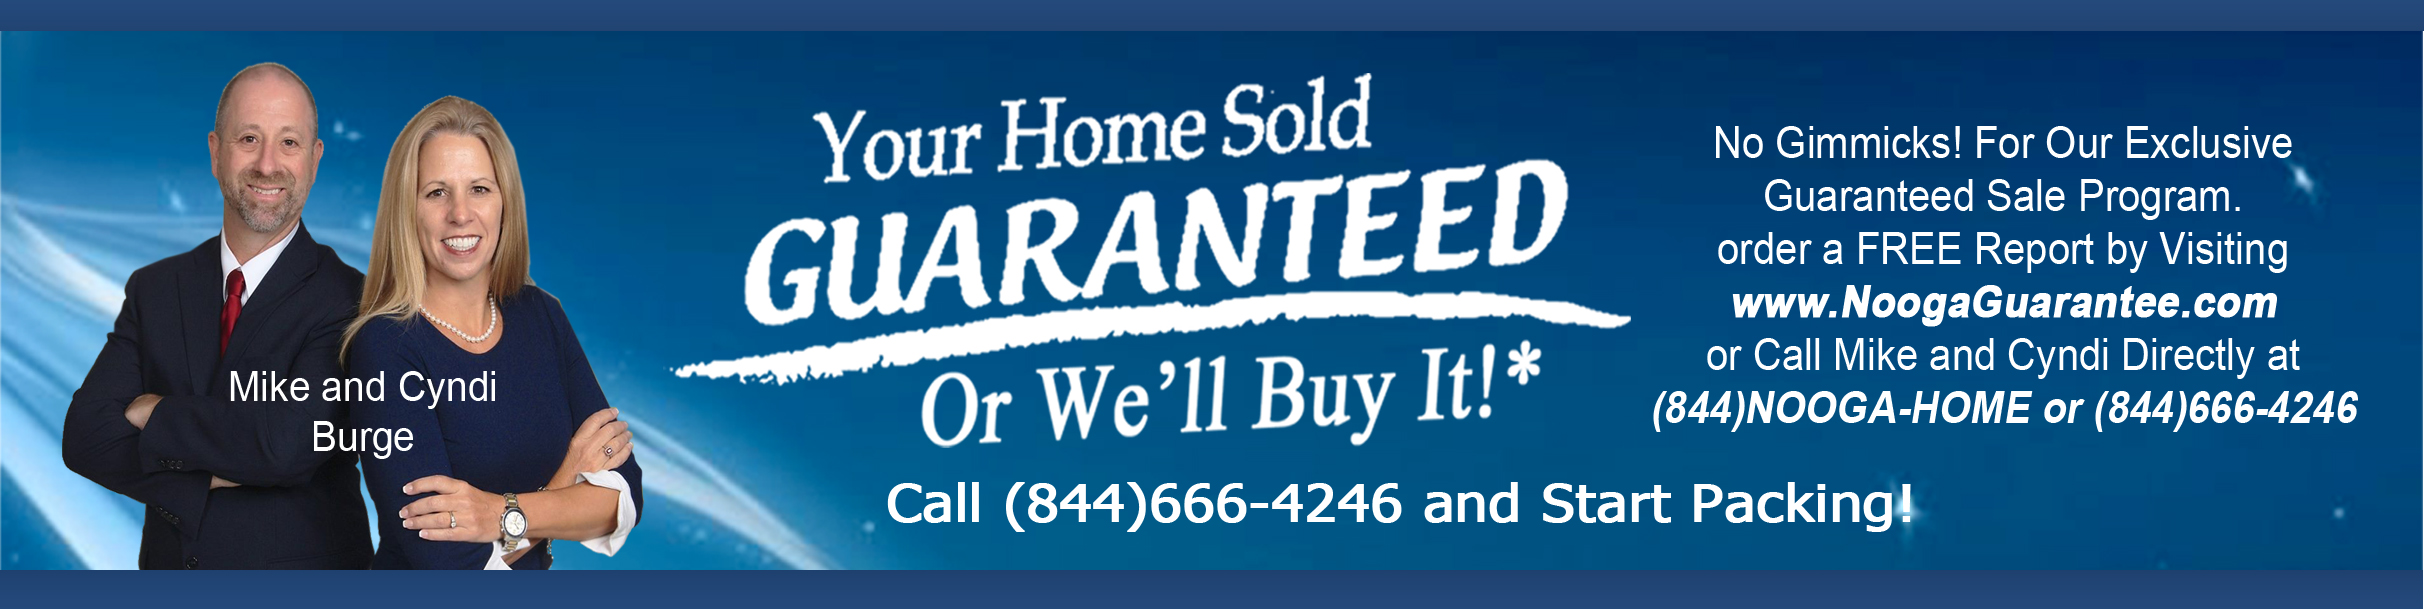 your home sold guaranteed or we'll buy it